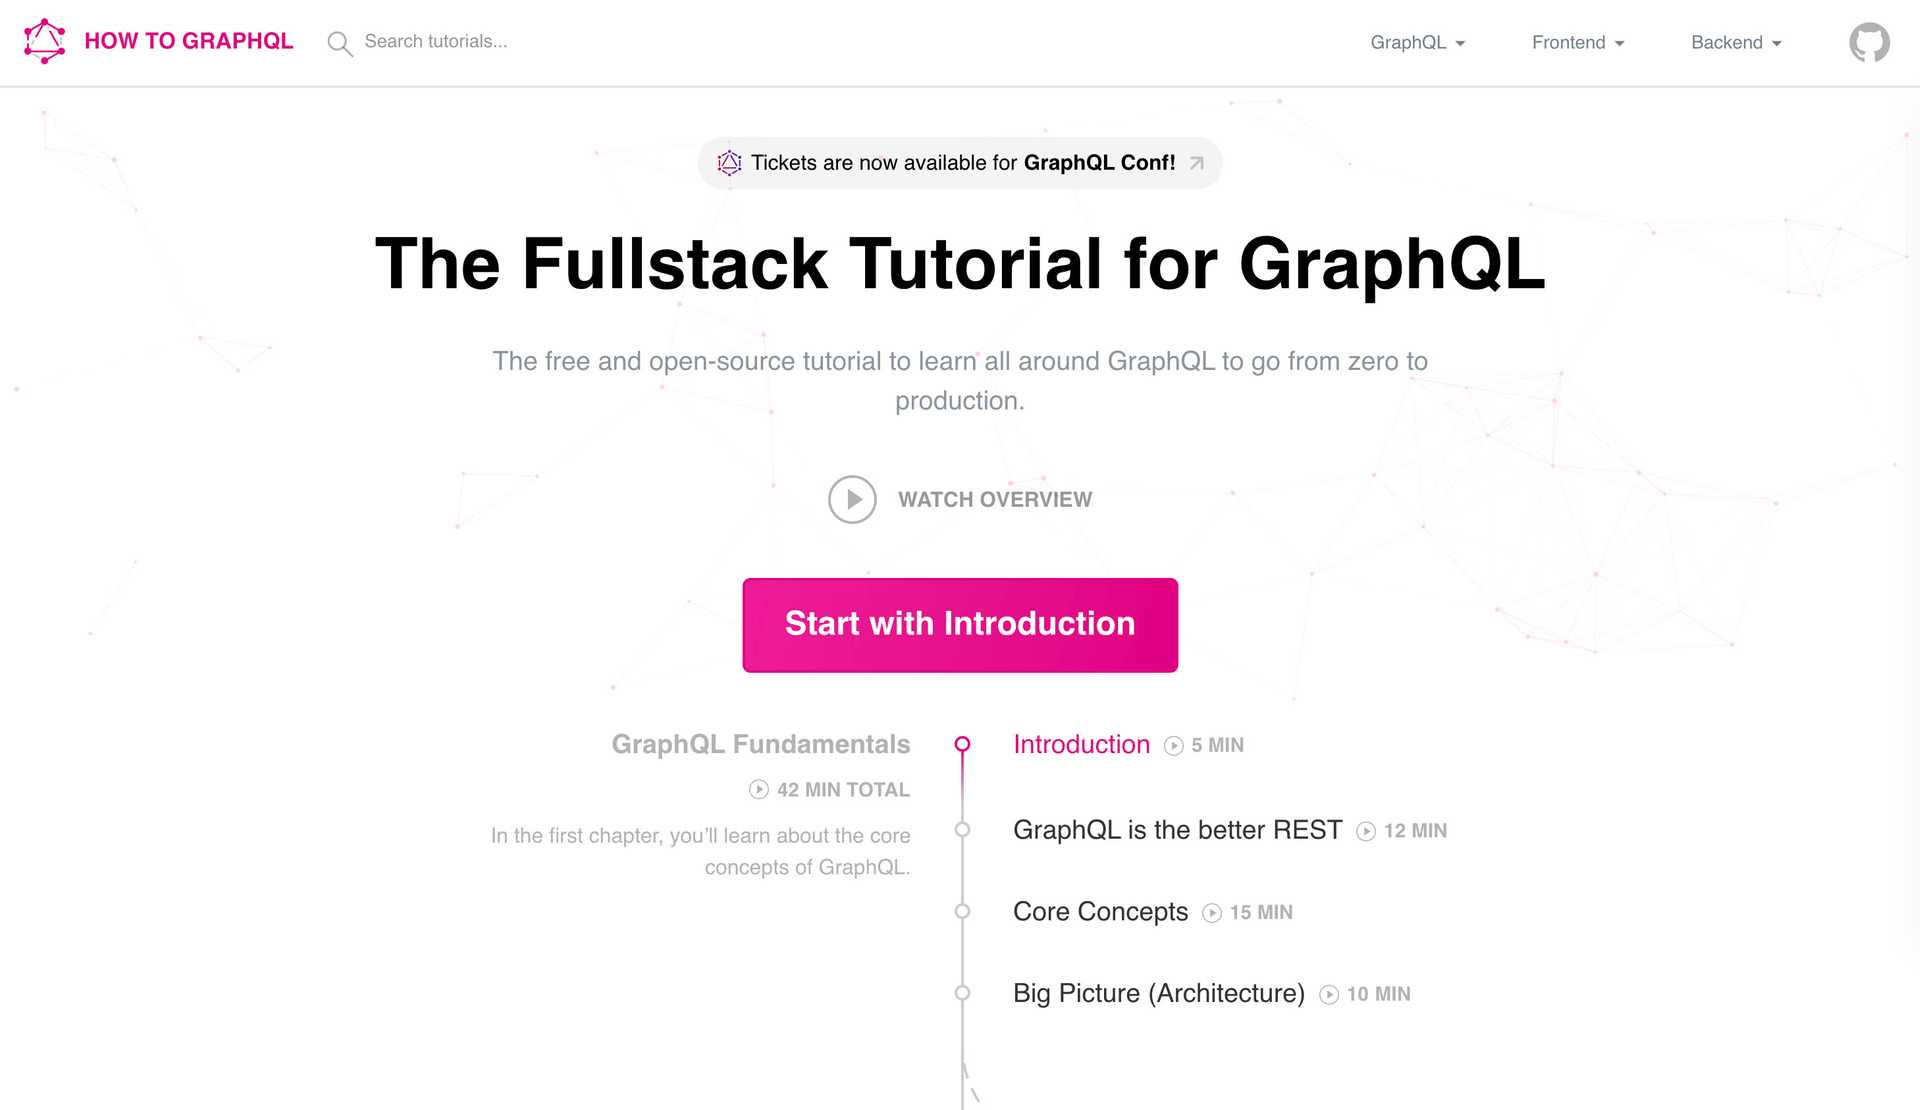 HOW TO GRAPHQL Tutorial